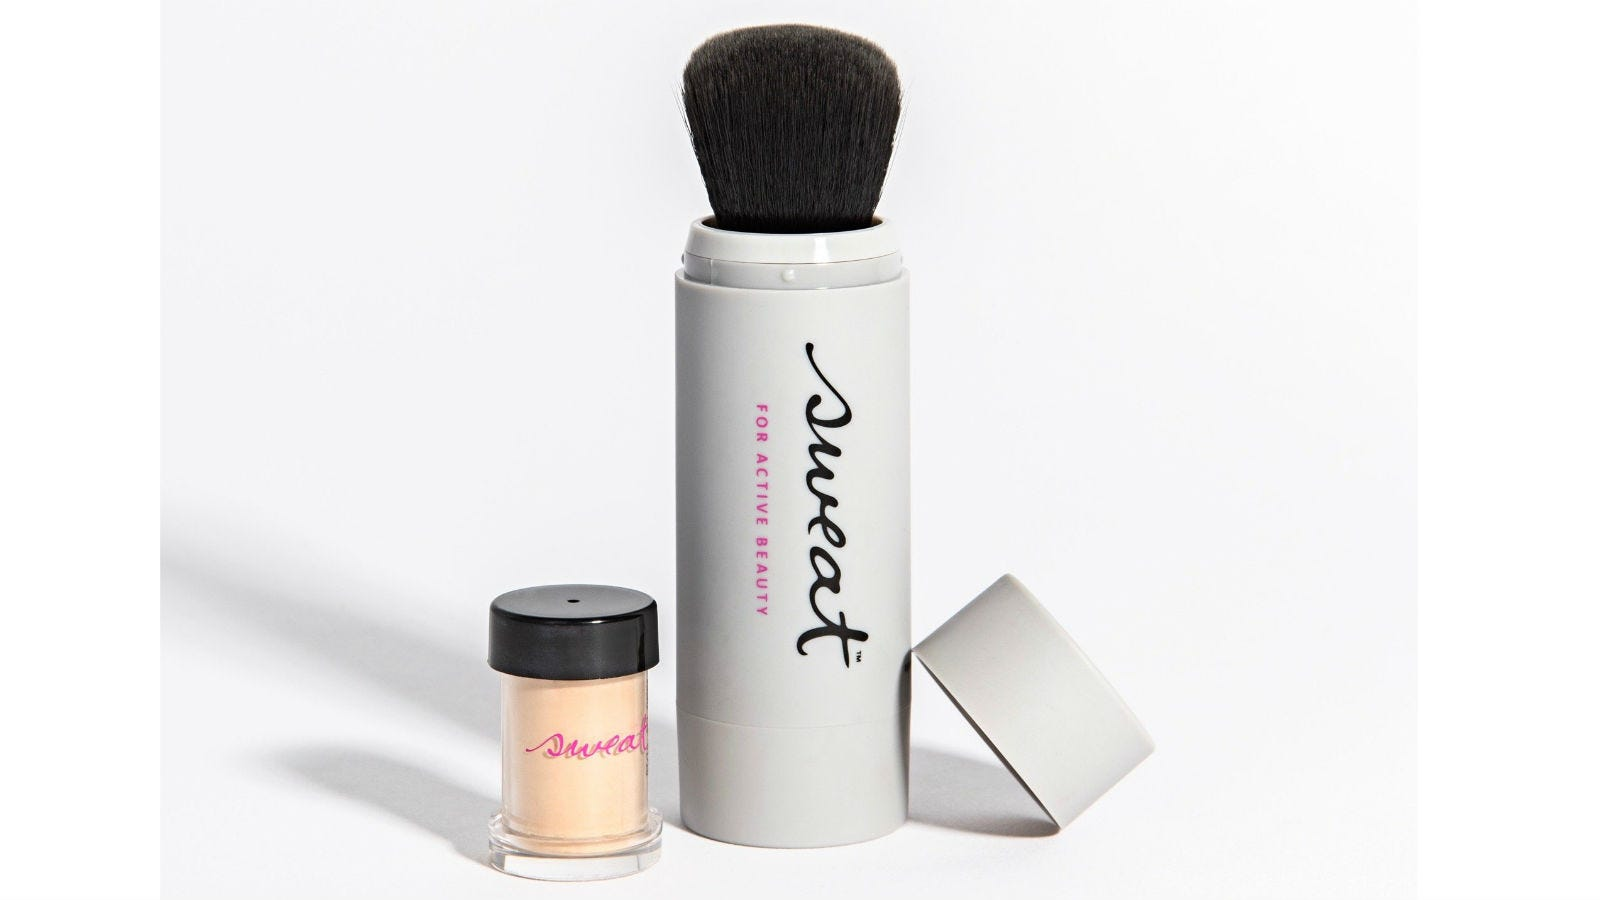 The Sweat Cosmetics Foundation Twist Brush sitting next to its cap and a small jar of foundation.